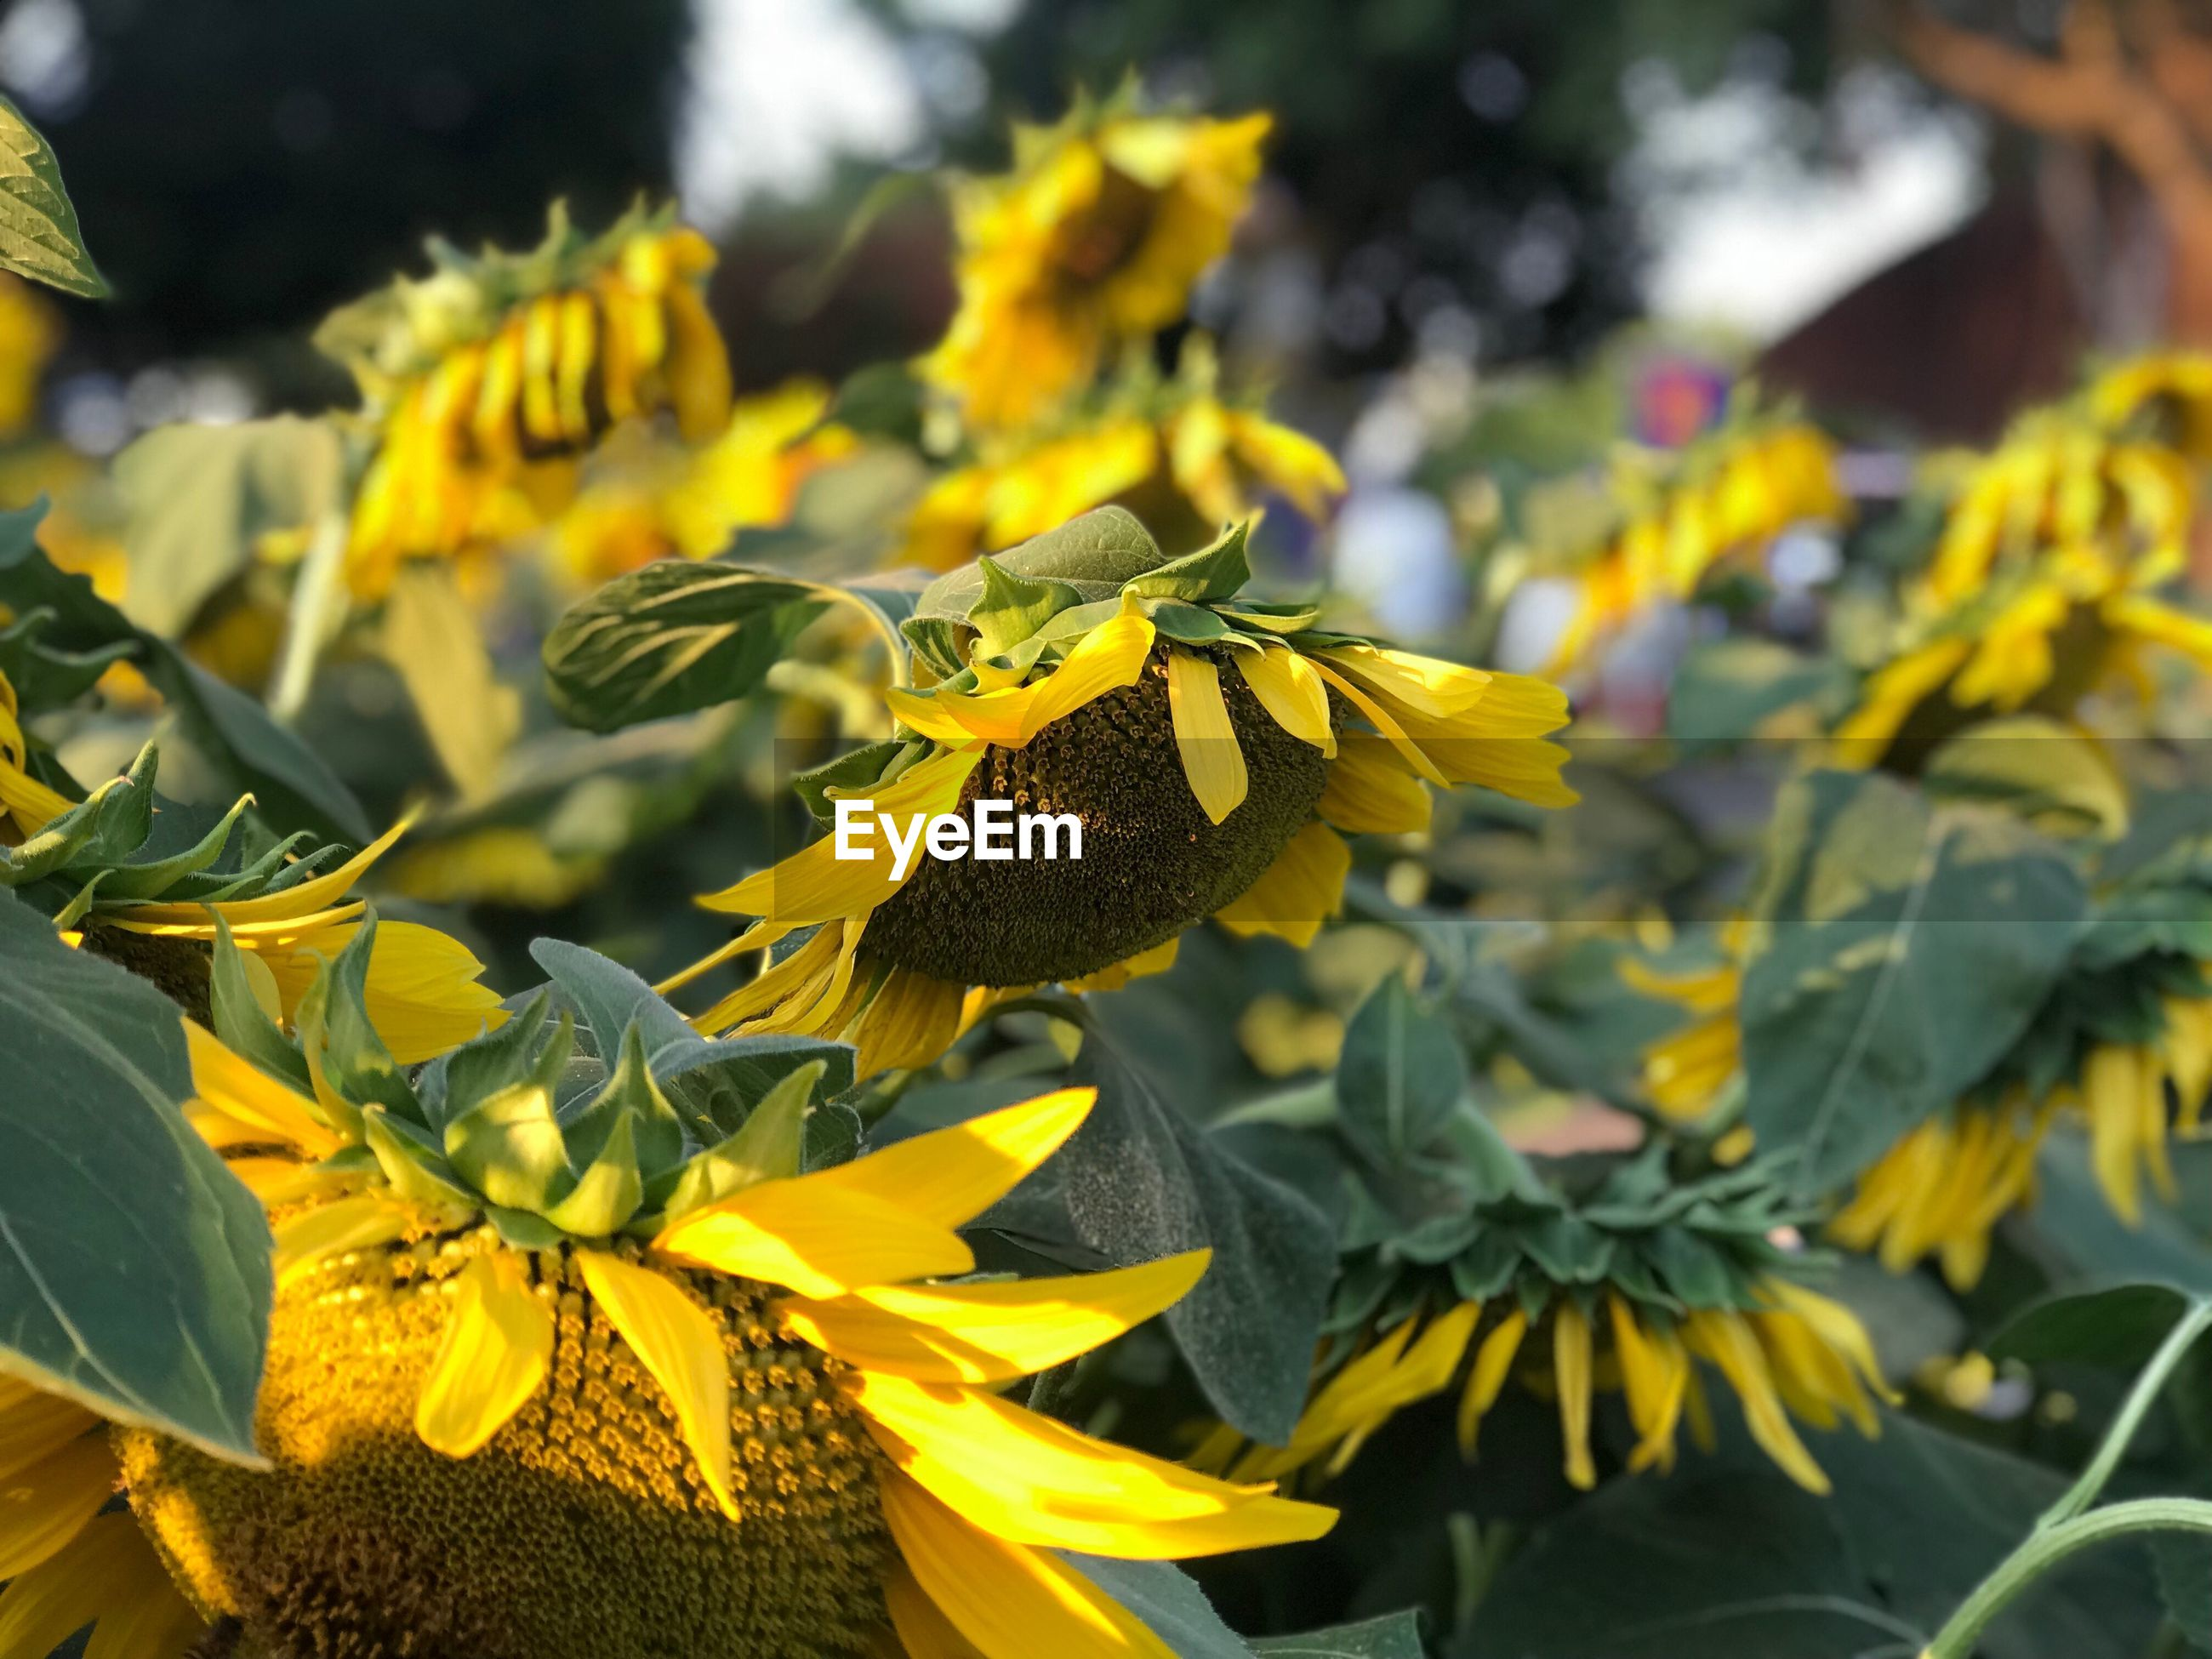 Close-up of sunflower plants